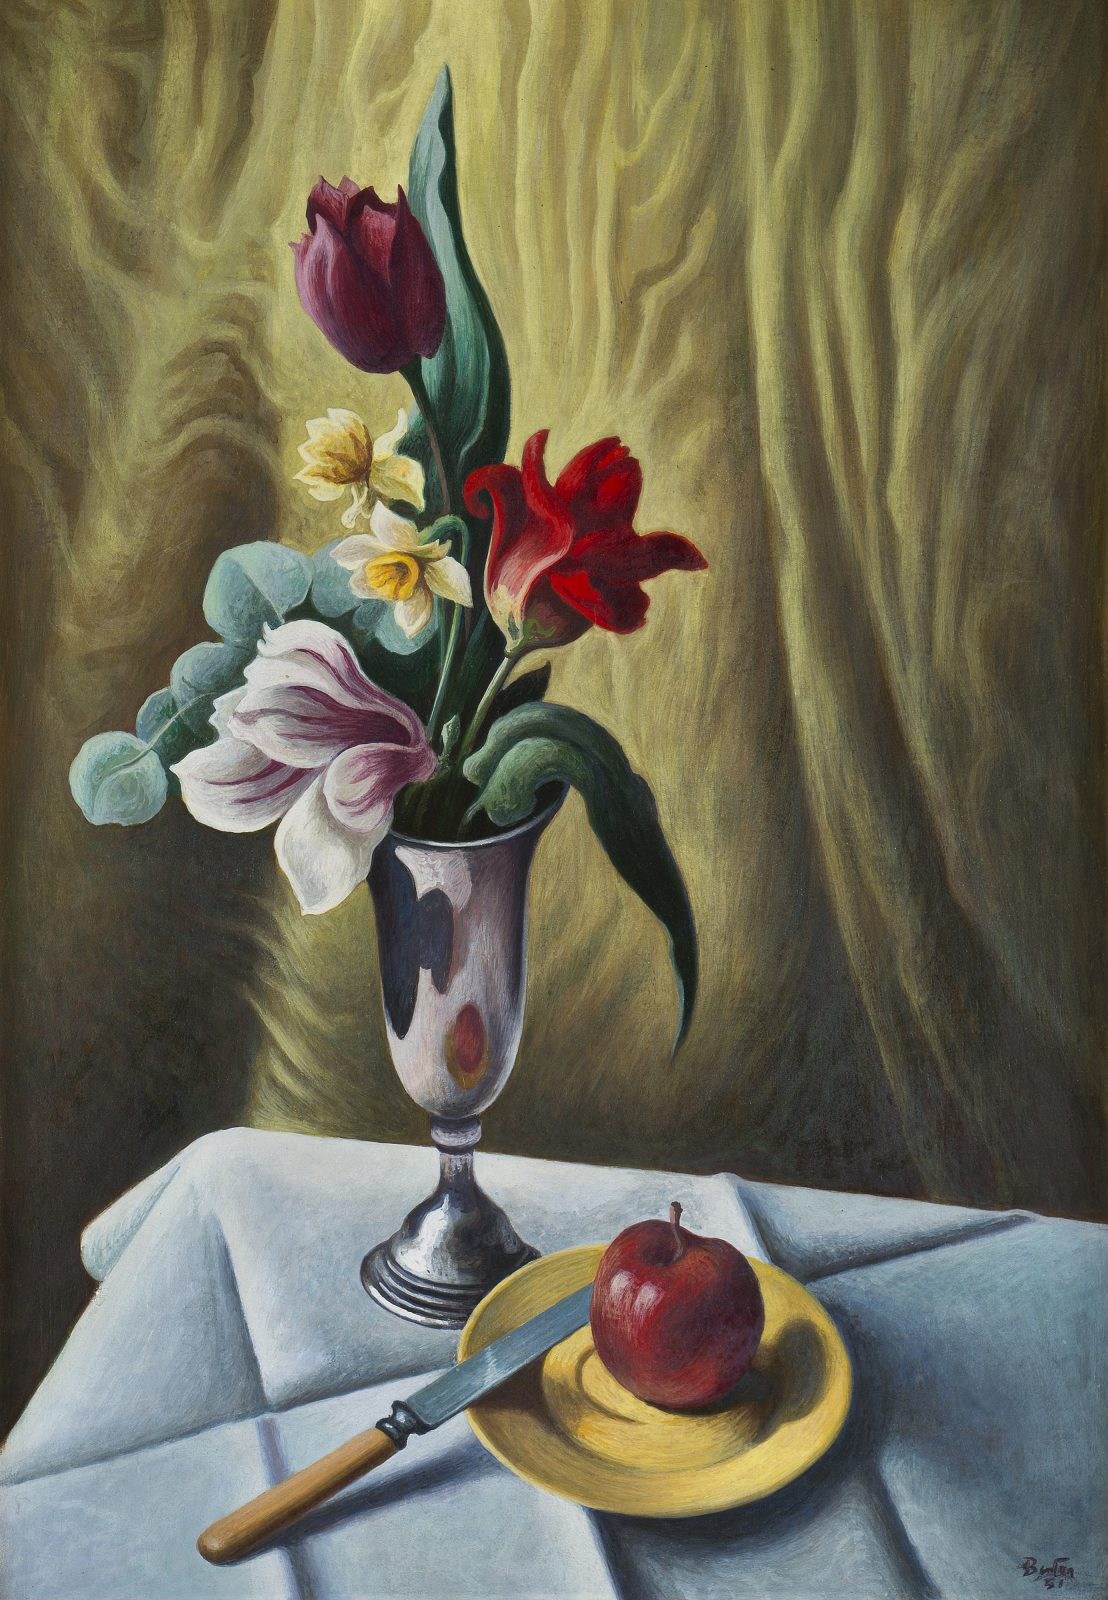 An apple, a knife and a plate are pictured in front of a vase with colorful flowers in this sill life by Thomas Hart Benton